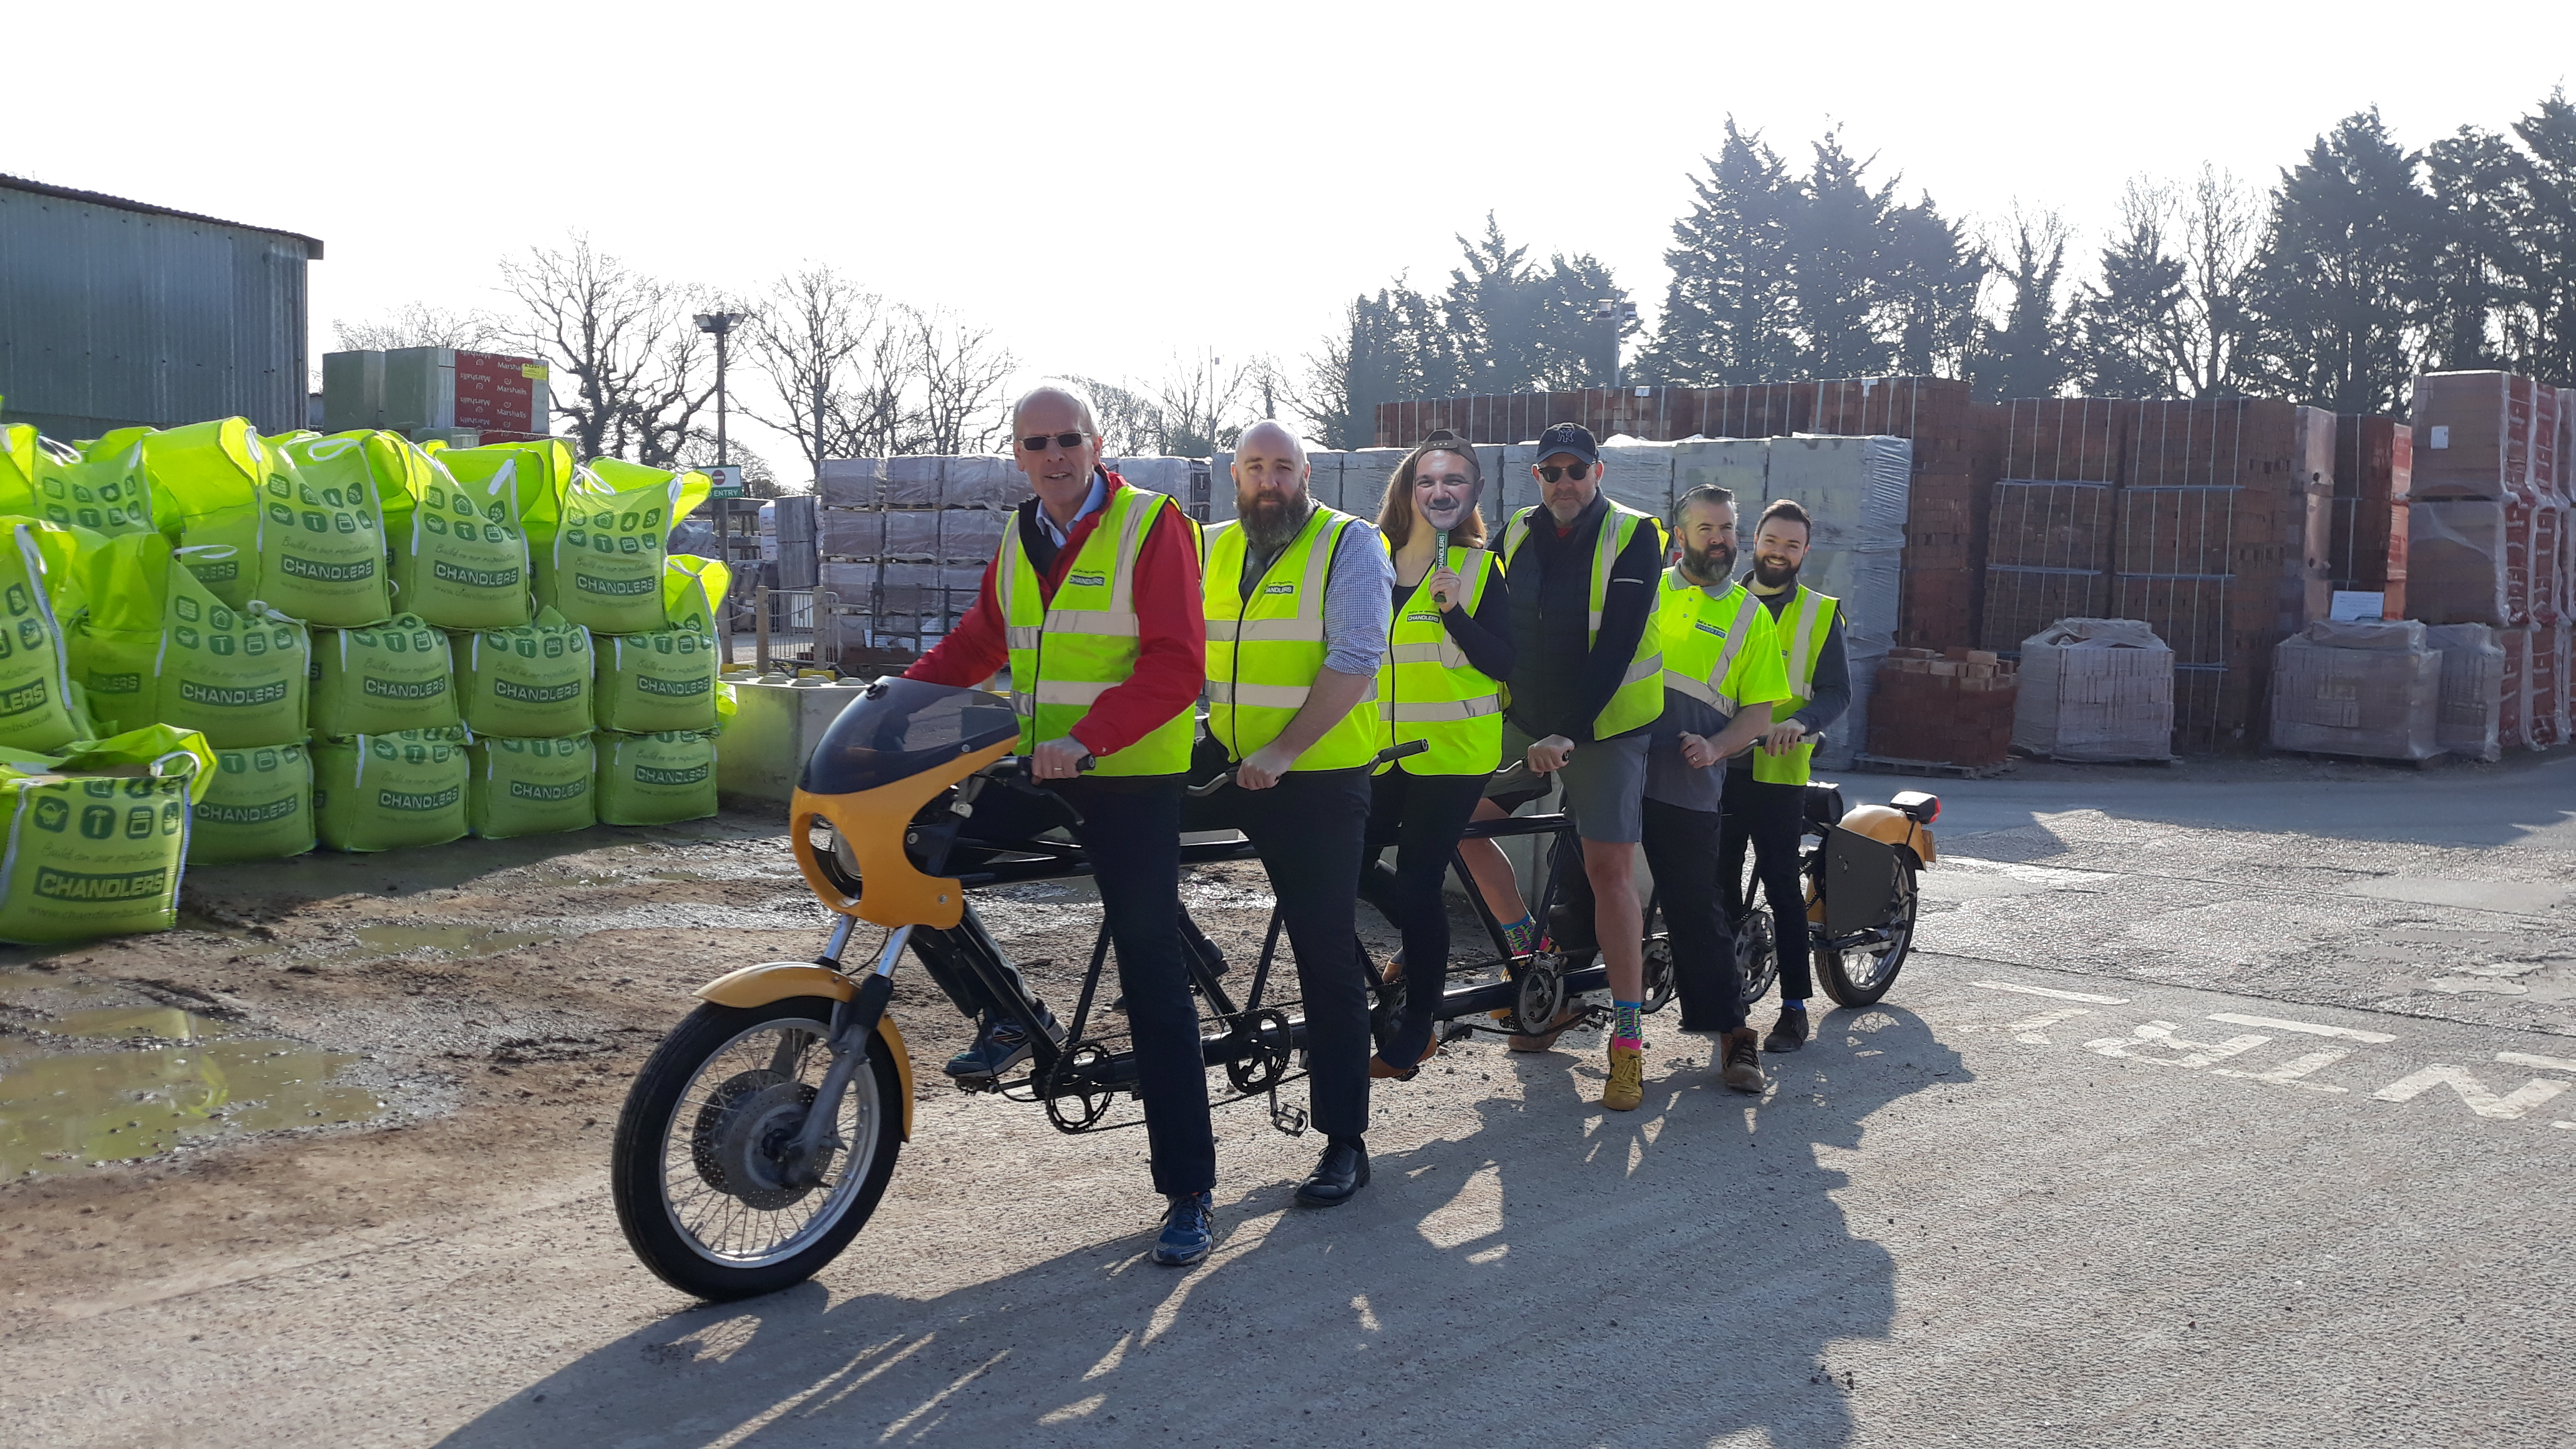 CHANDLERS BUILDING SUPPLIES PEDAL POWER FOR SEVEN PORT CHALLENGE